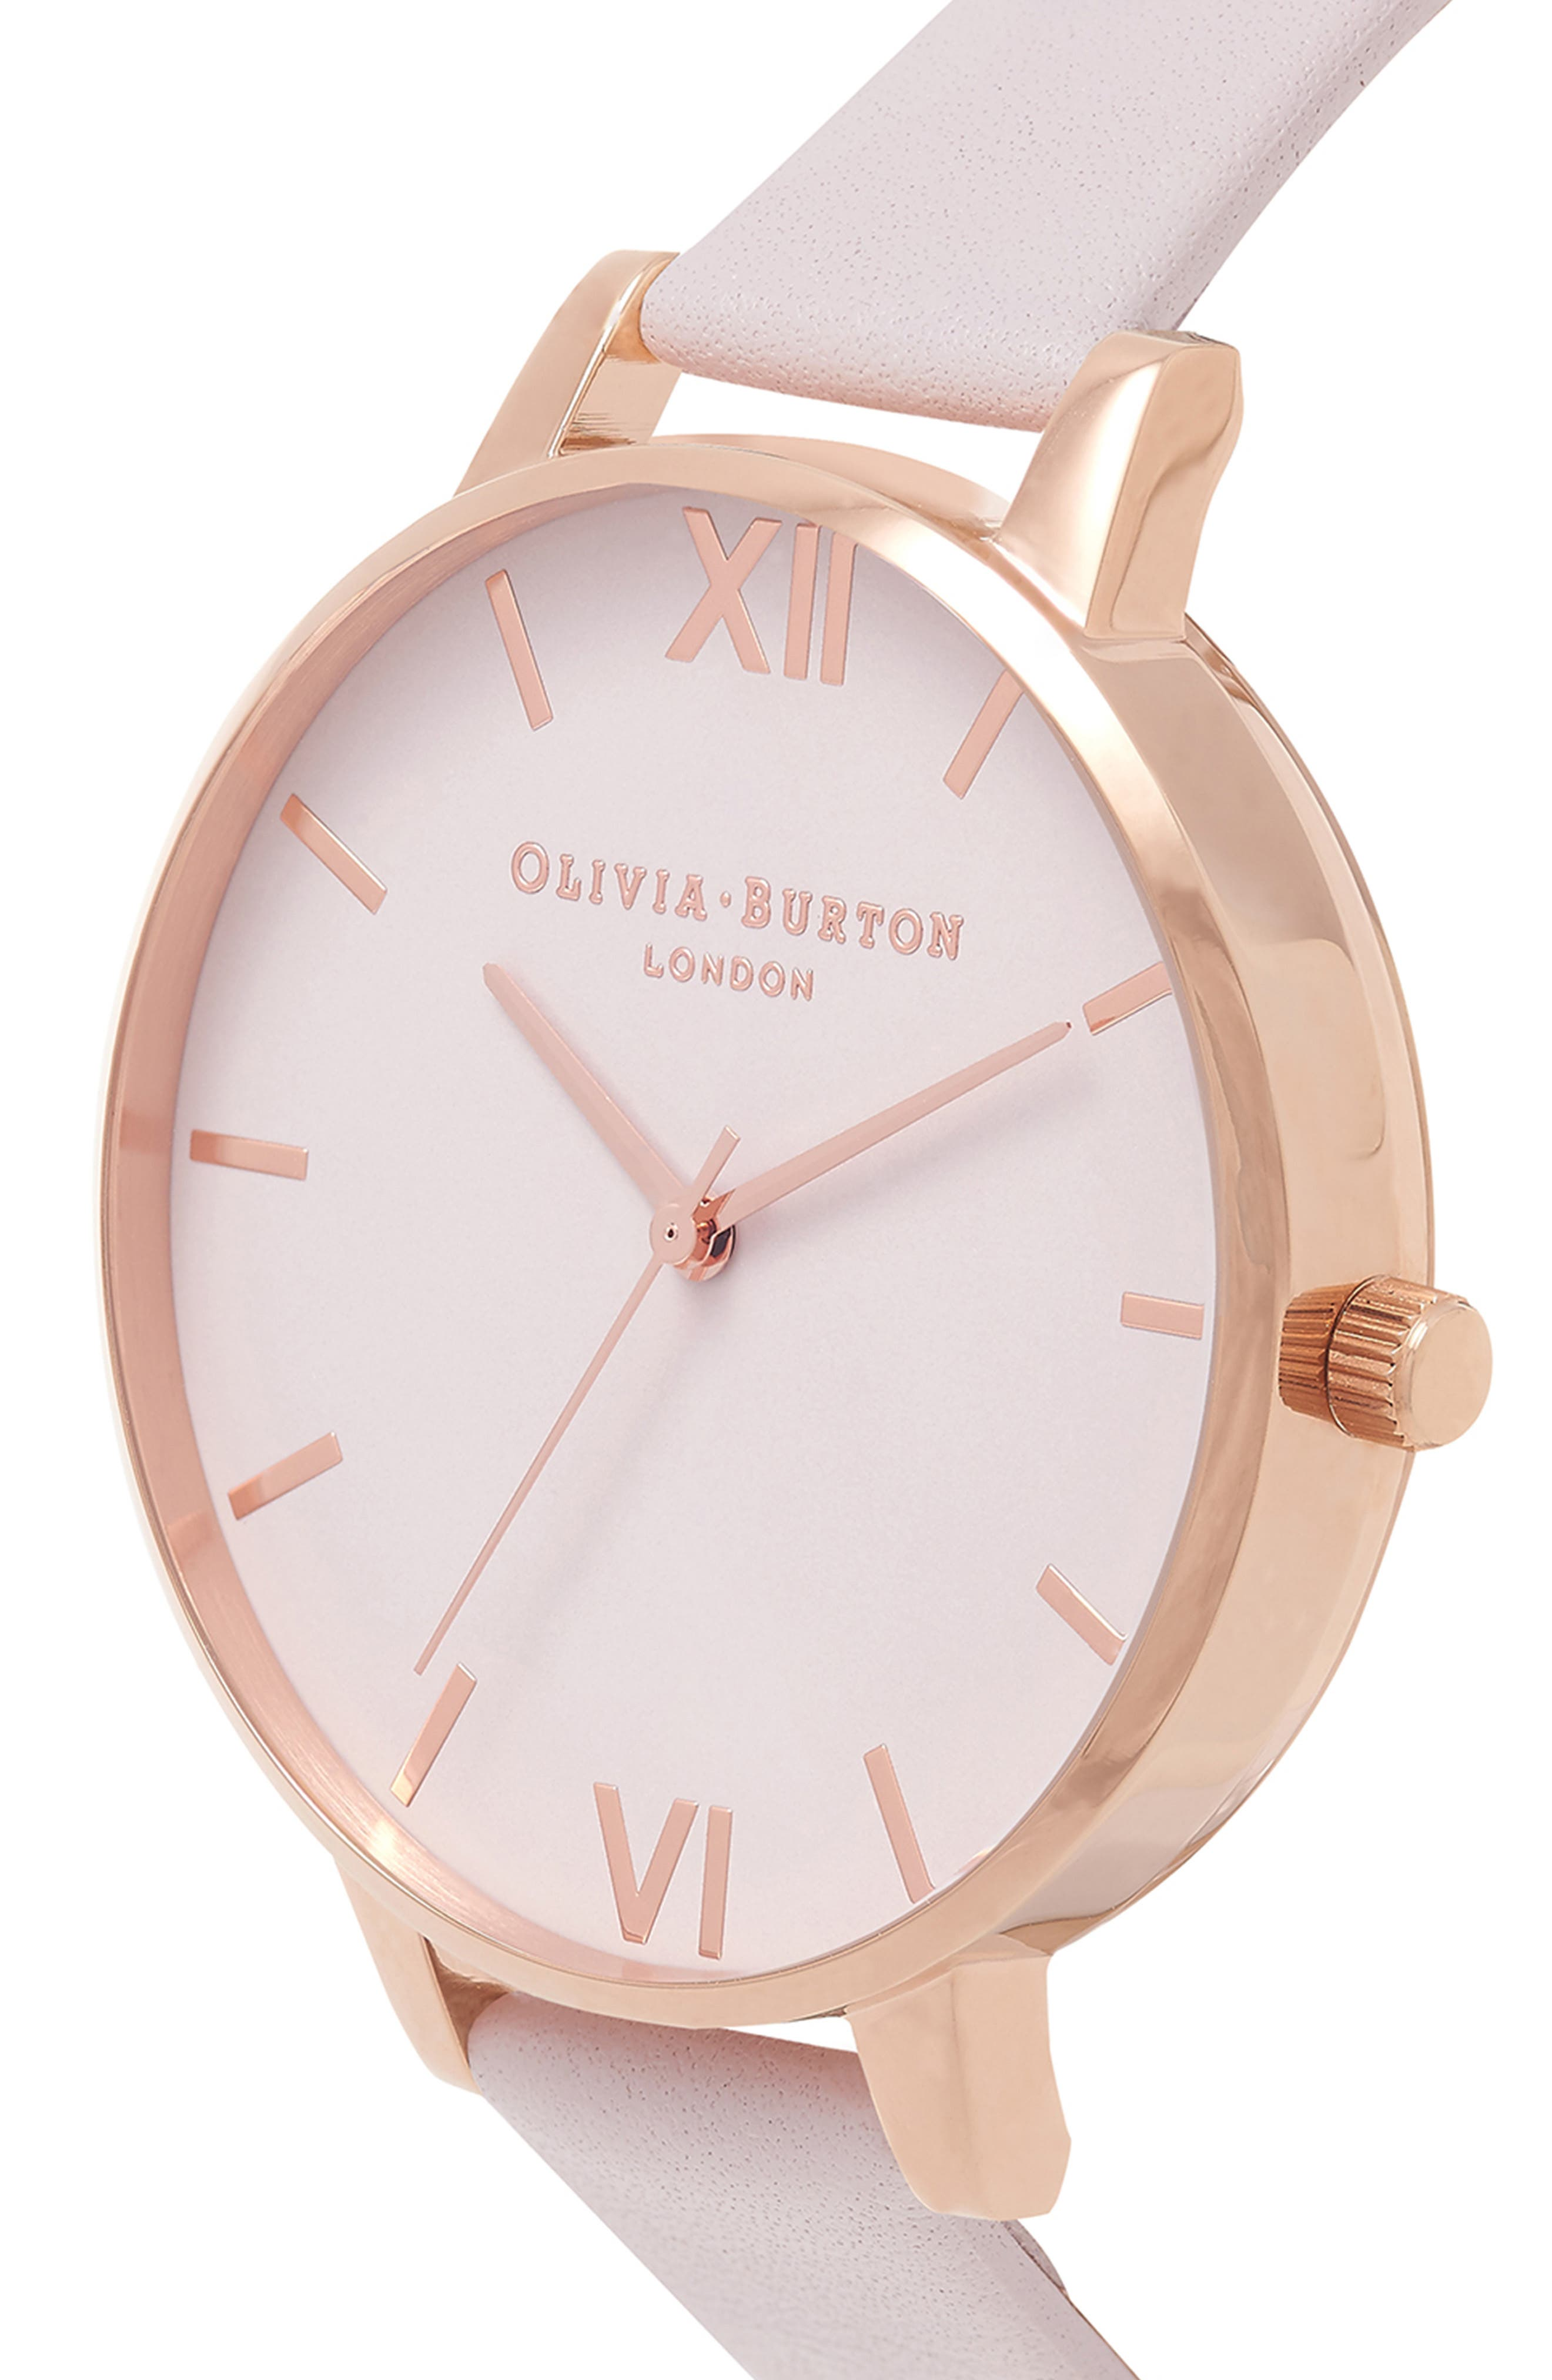 Begin to Blush Leather Strap Watch, 38mm,                             Alternate thumbnail 4, color,                             BLUSH/ ROSE GOLD